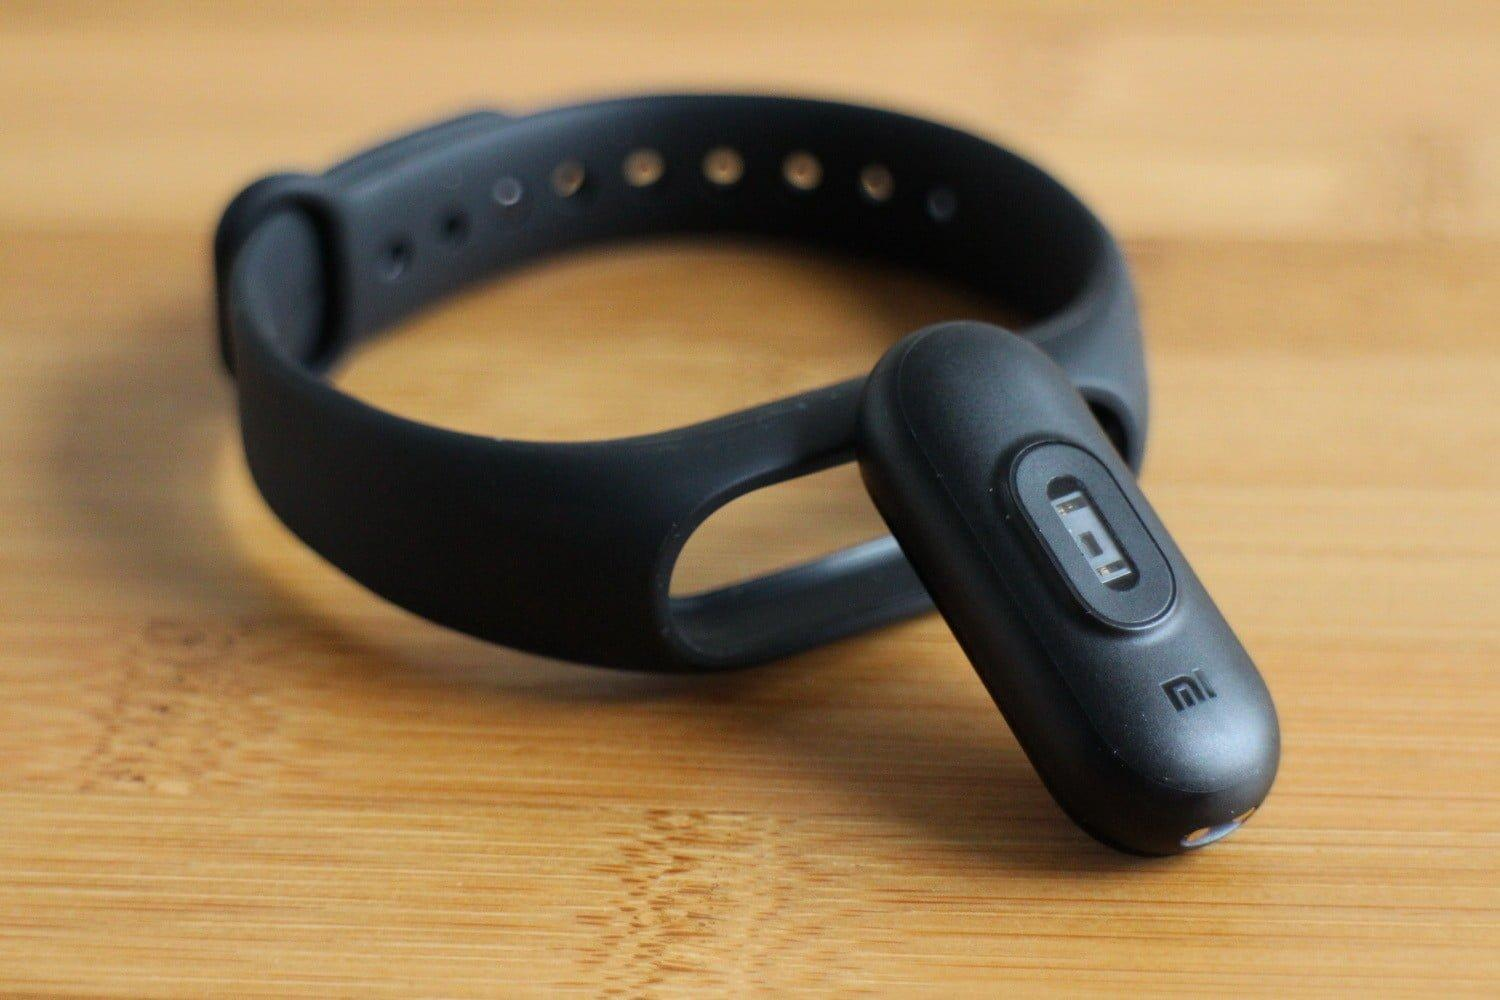 xiaomi mi band 2 smart watch